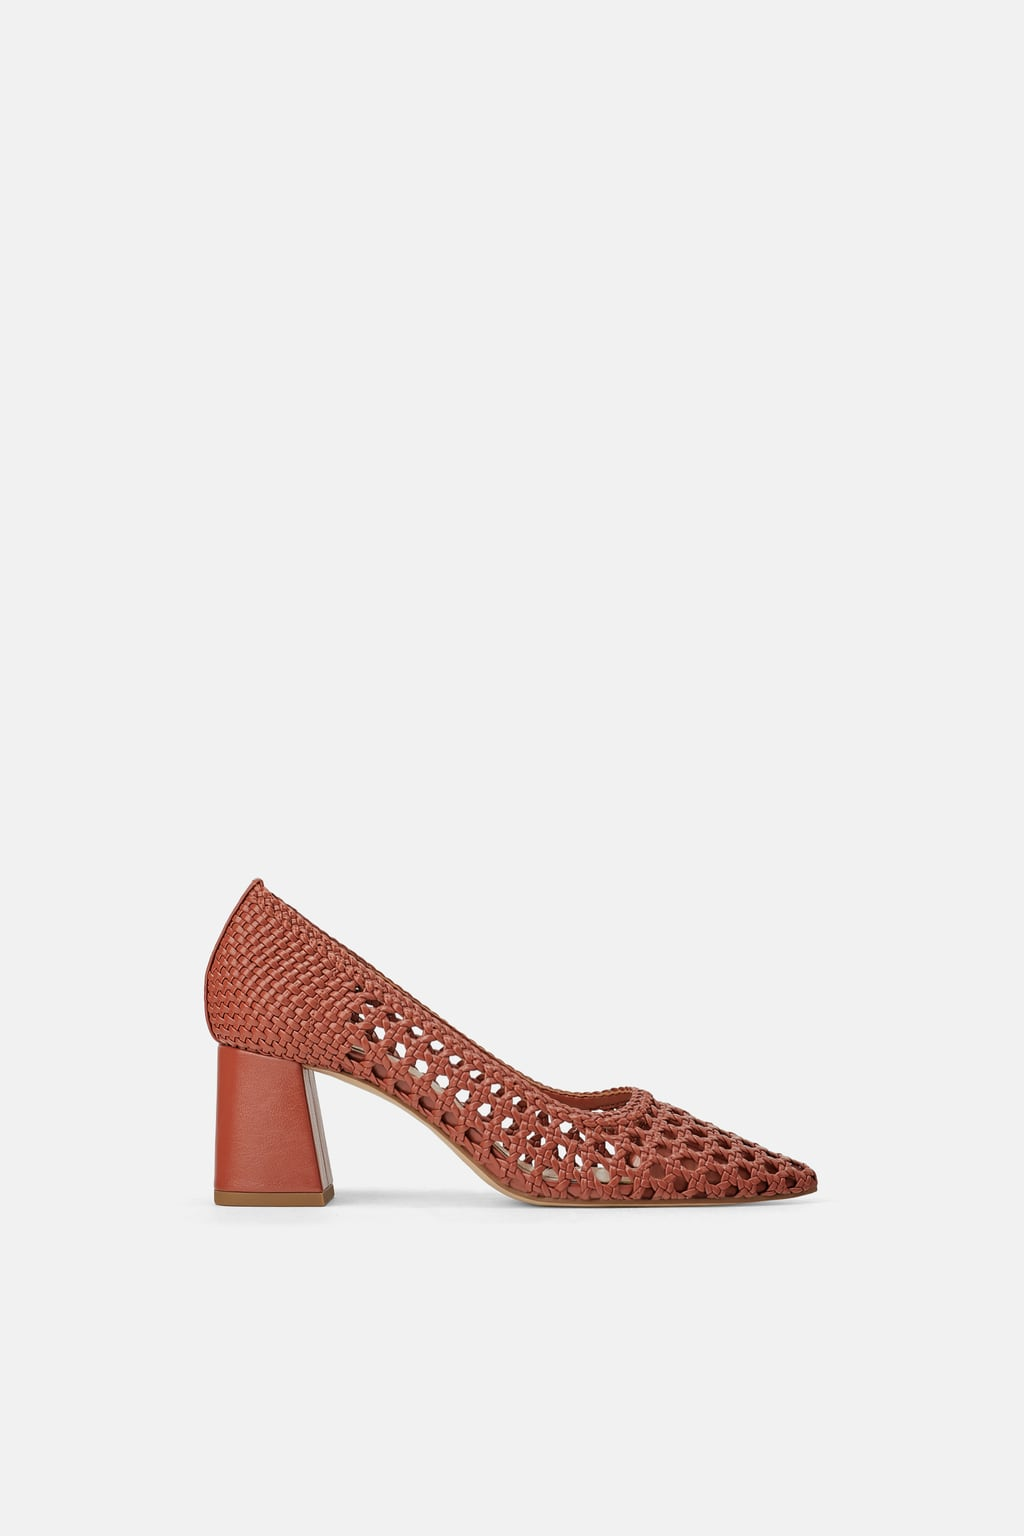 ZARA BRAIDED BLOCK HEELS